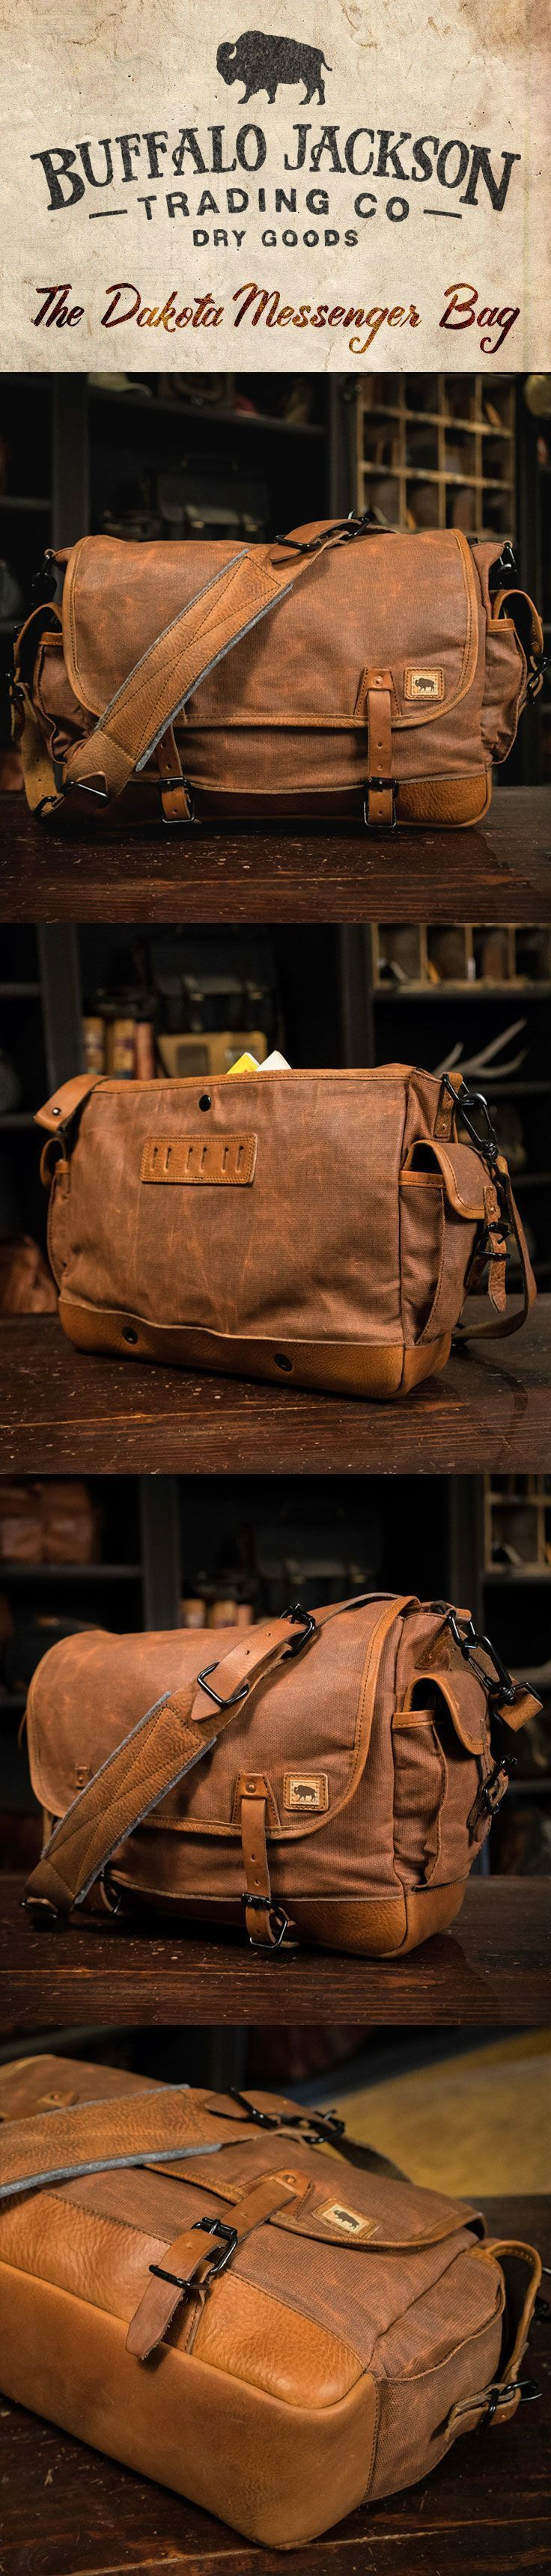 c79ac46723 Dakota Waxed Canvas Messenger Bag